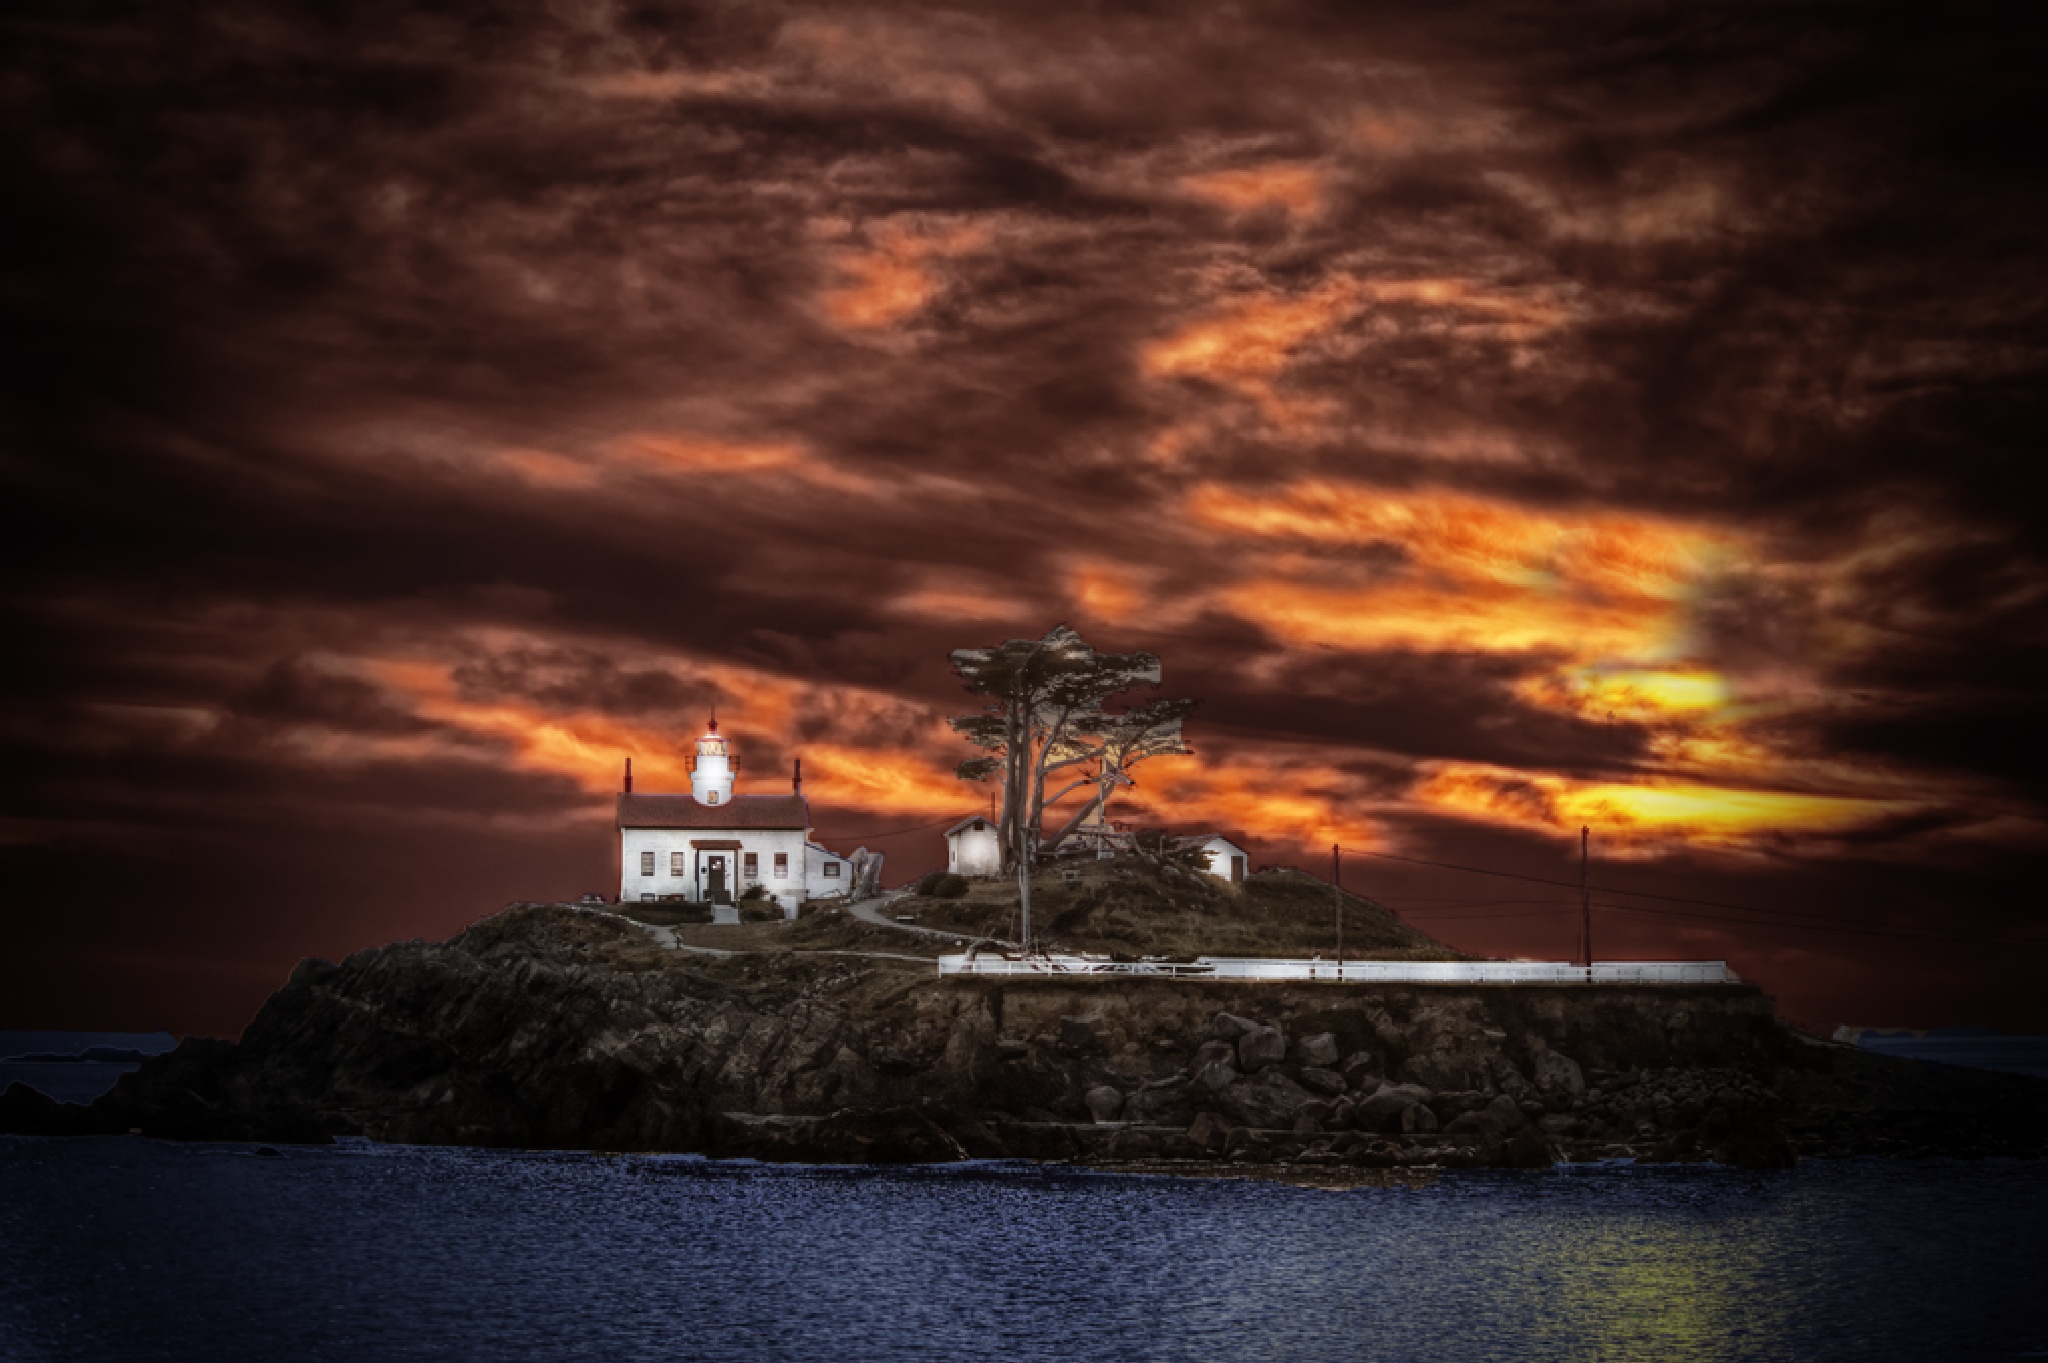 Battery Point Light at sunset by Pazzophoto